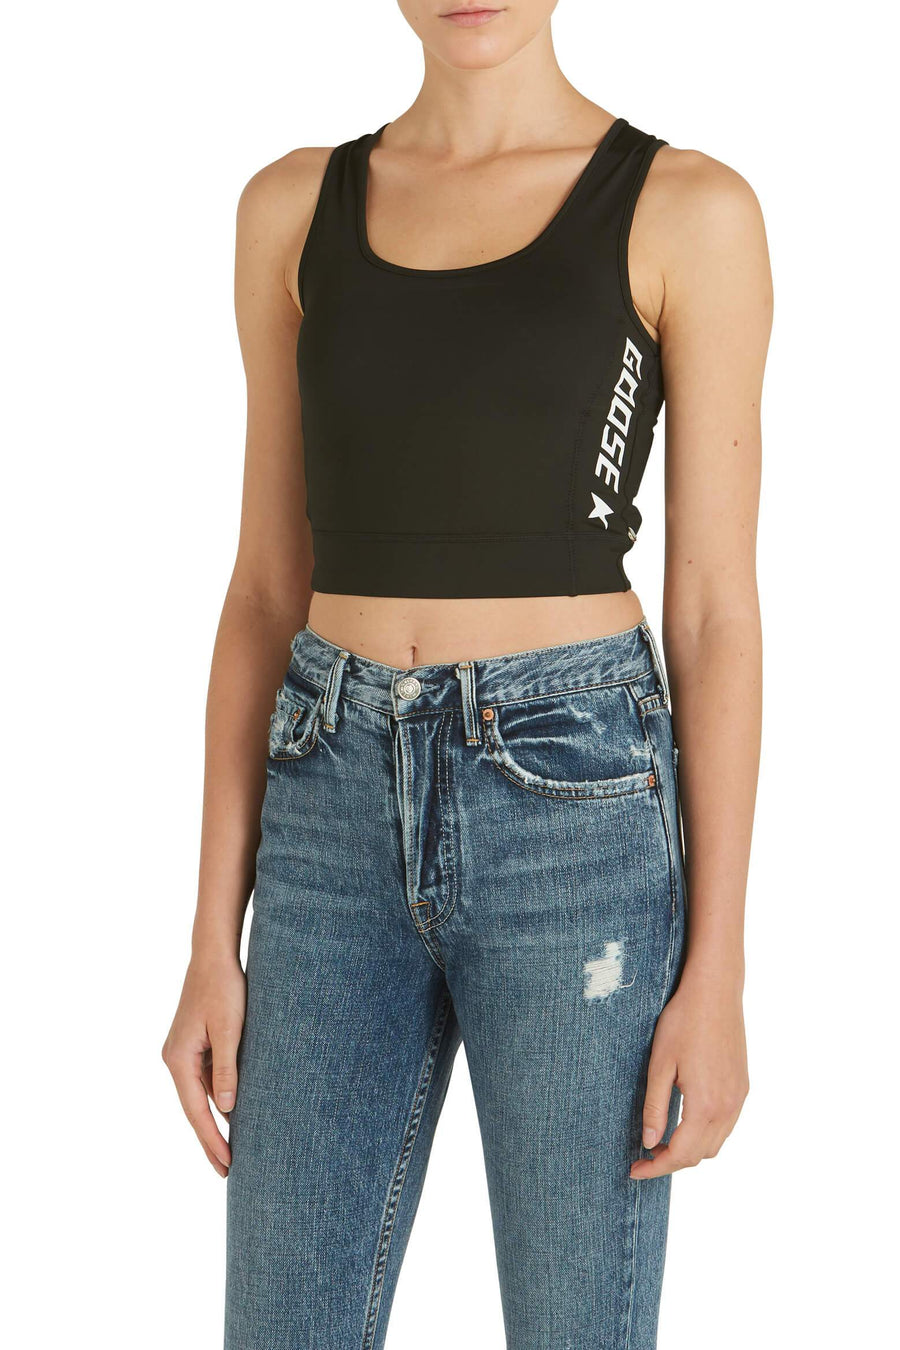 Golden Goose Keshi Top in black from The New Trend